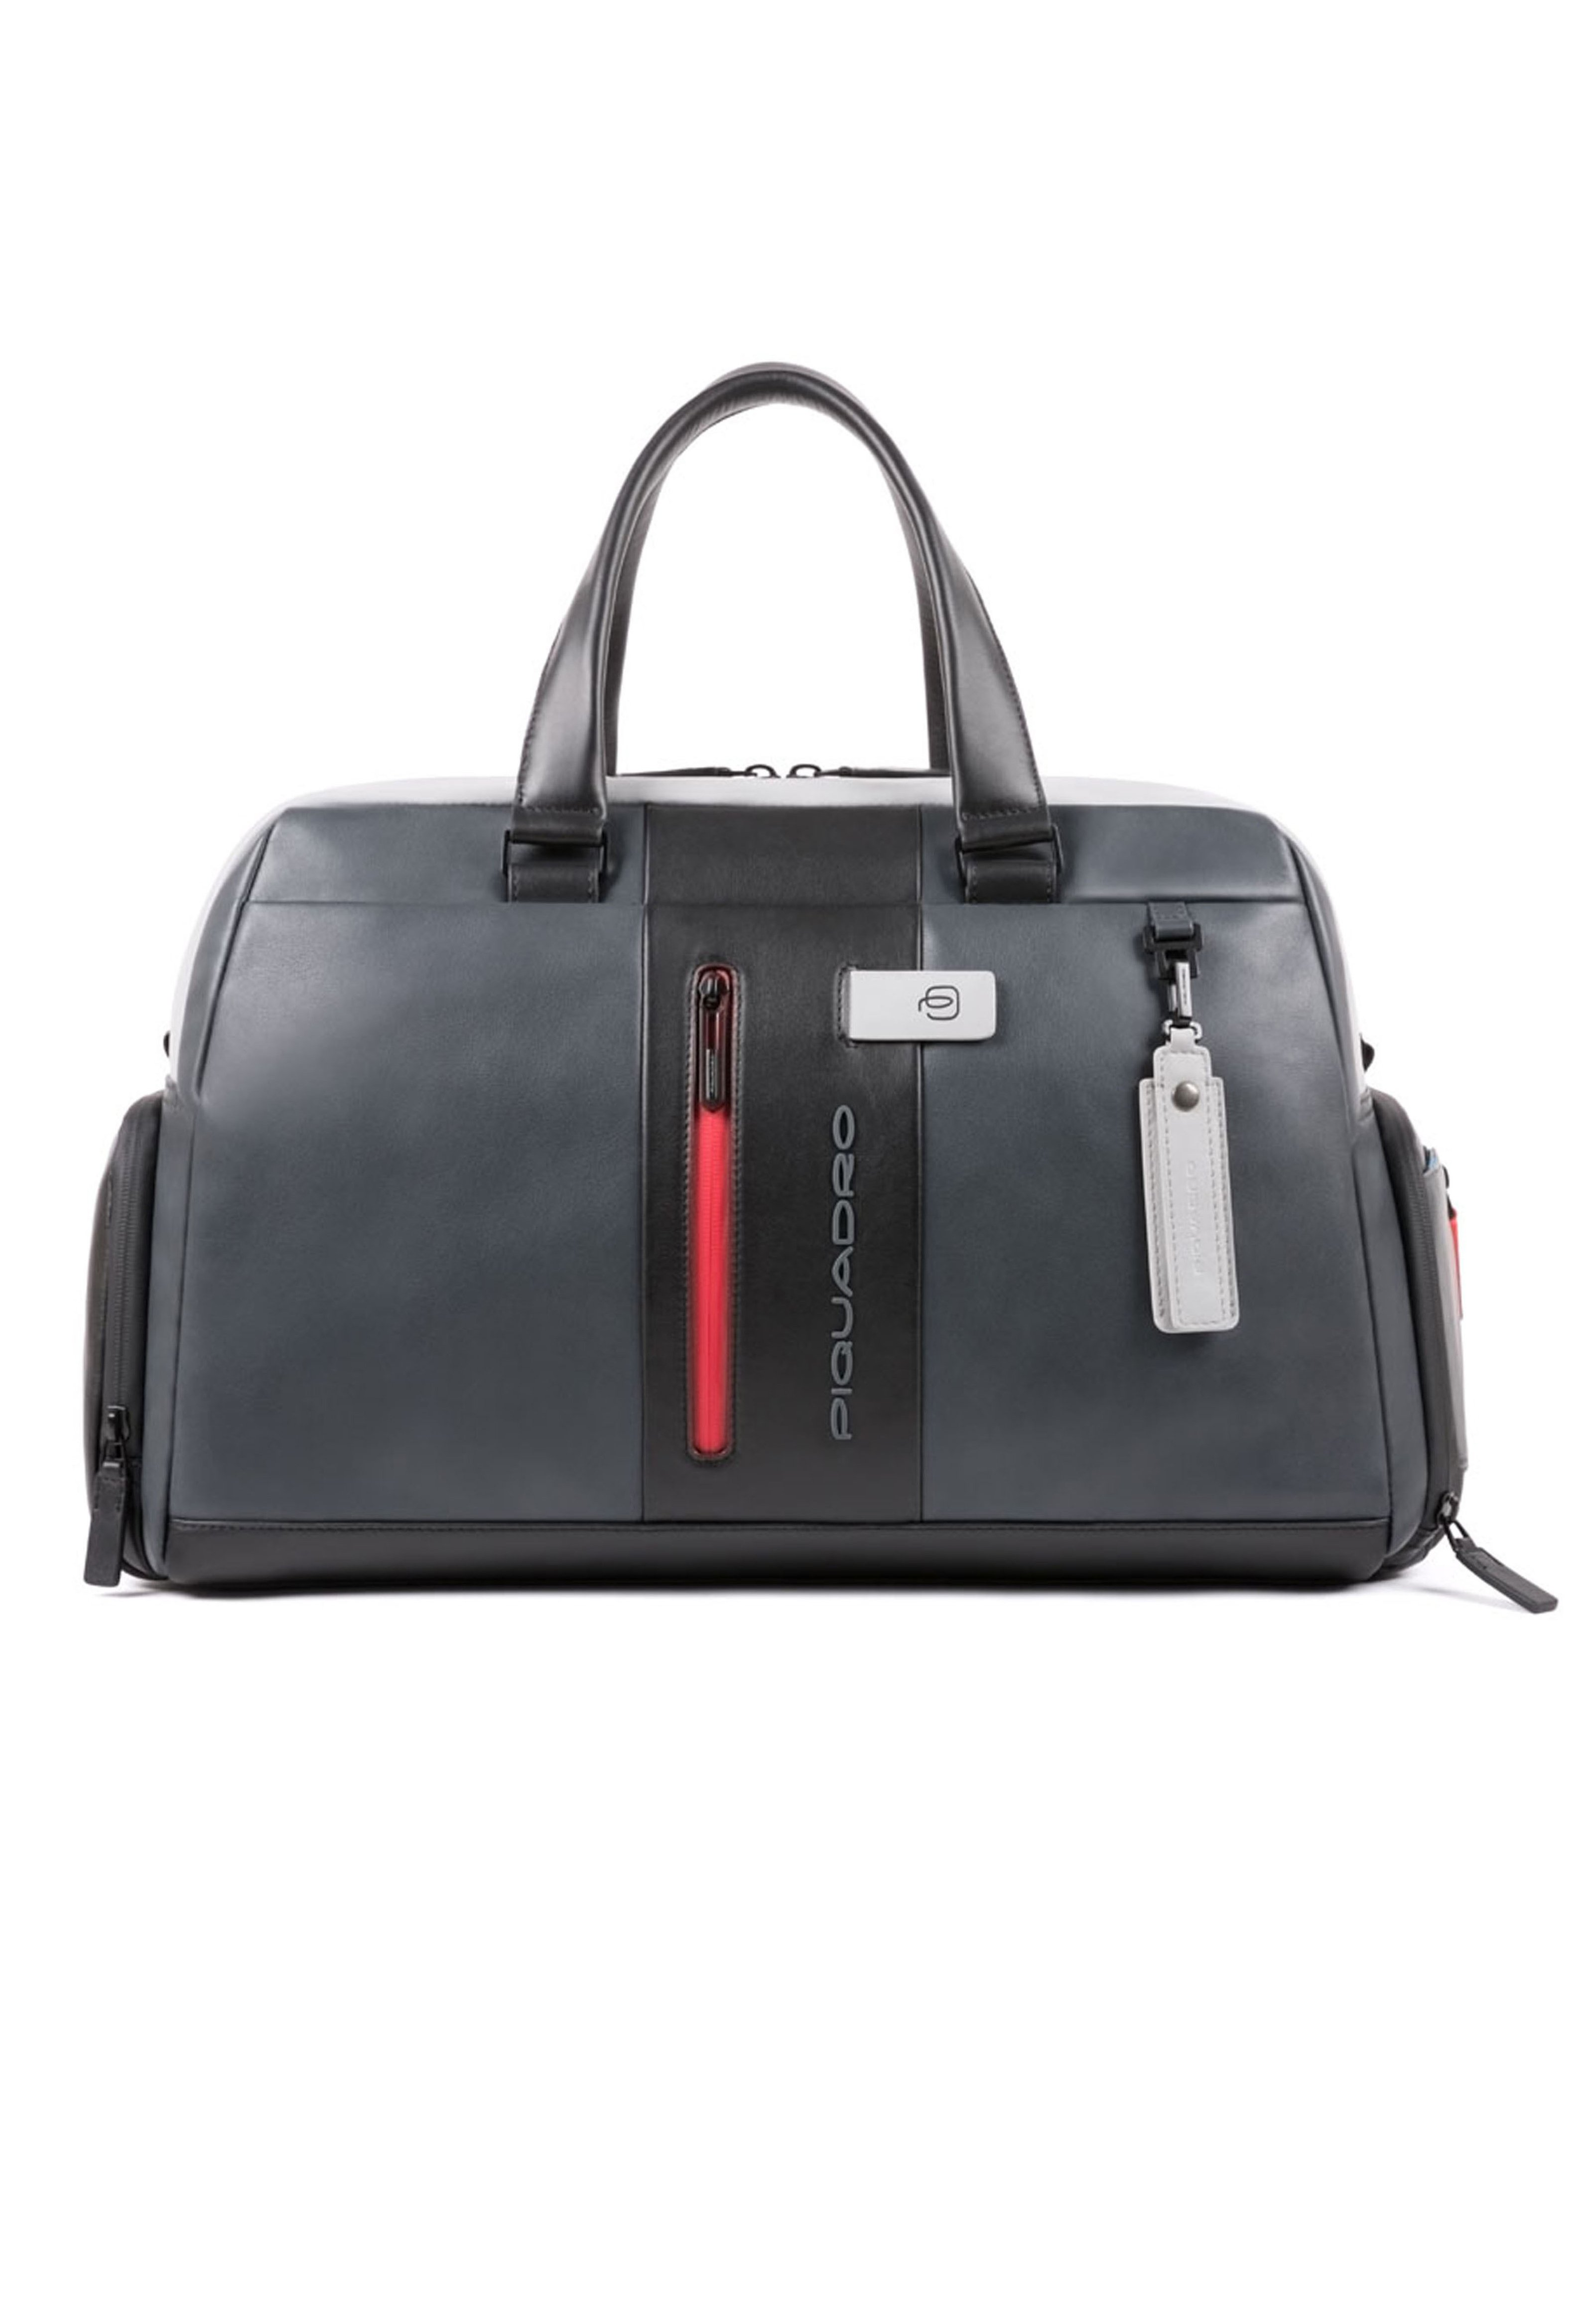 Accessori,Gioielli,Borse & Beauty care Piquadro URBAN NEW LINE REISETASCHE LEDER 49 CM Borsa da viaggio grey-black